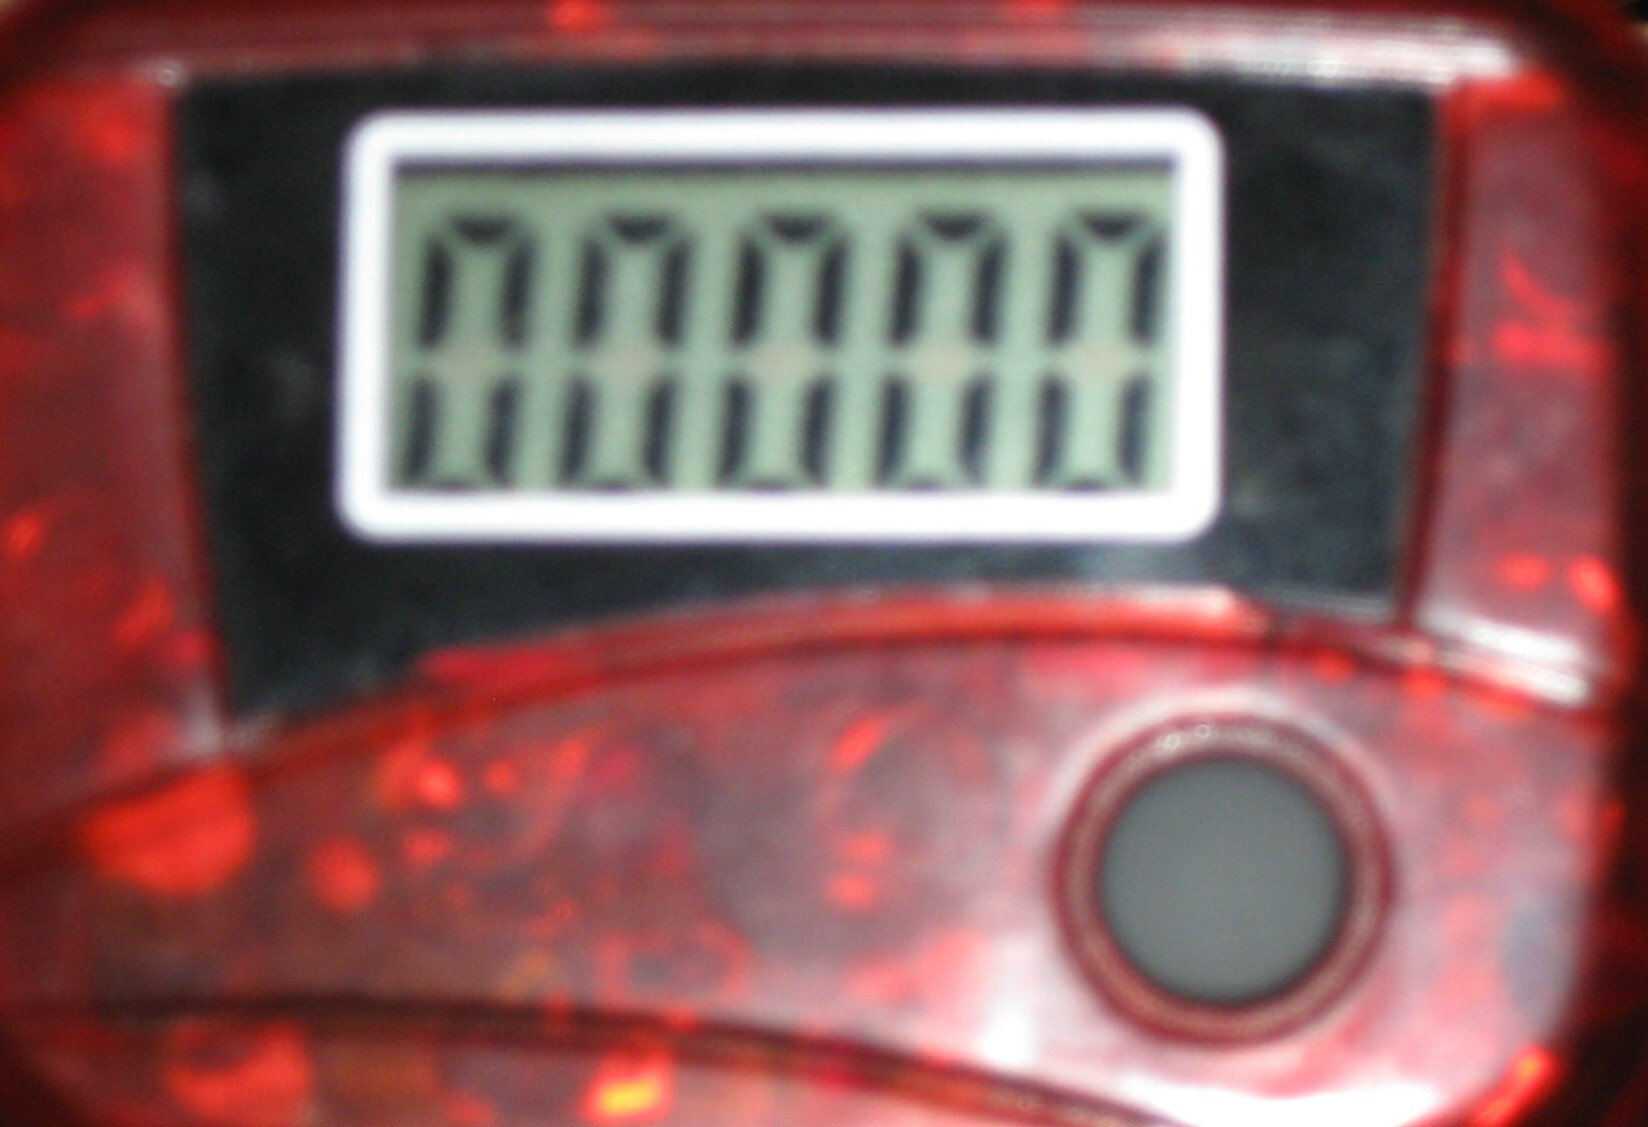 A8 MMS - Measure Counter